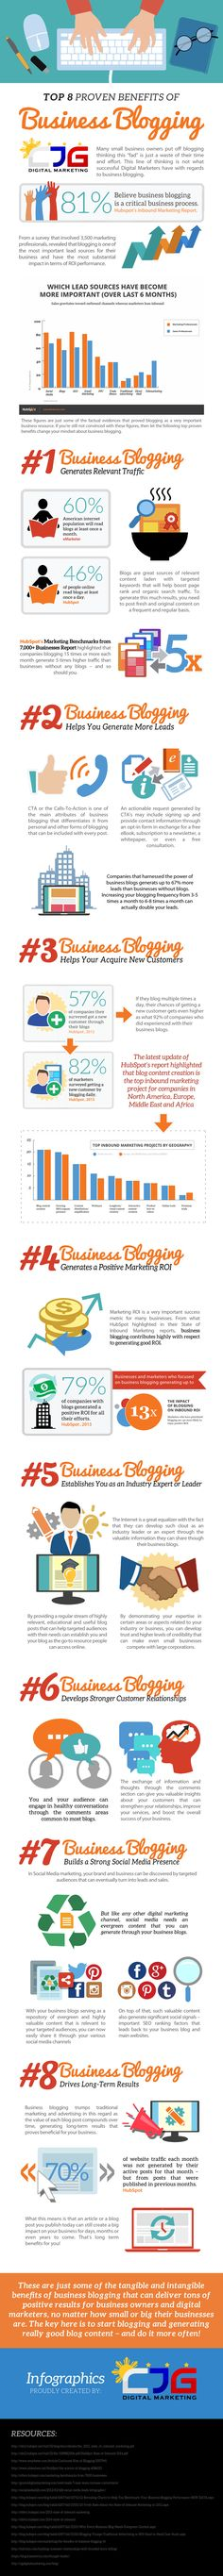 Top 8 Proven Benefits of Business Blogging (Infographic) | via @borntobesocial